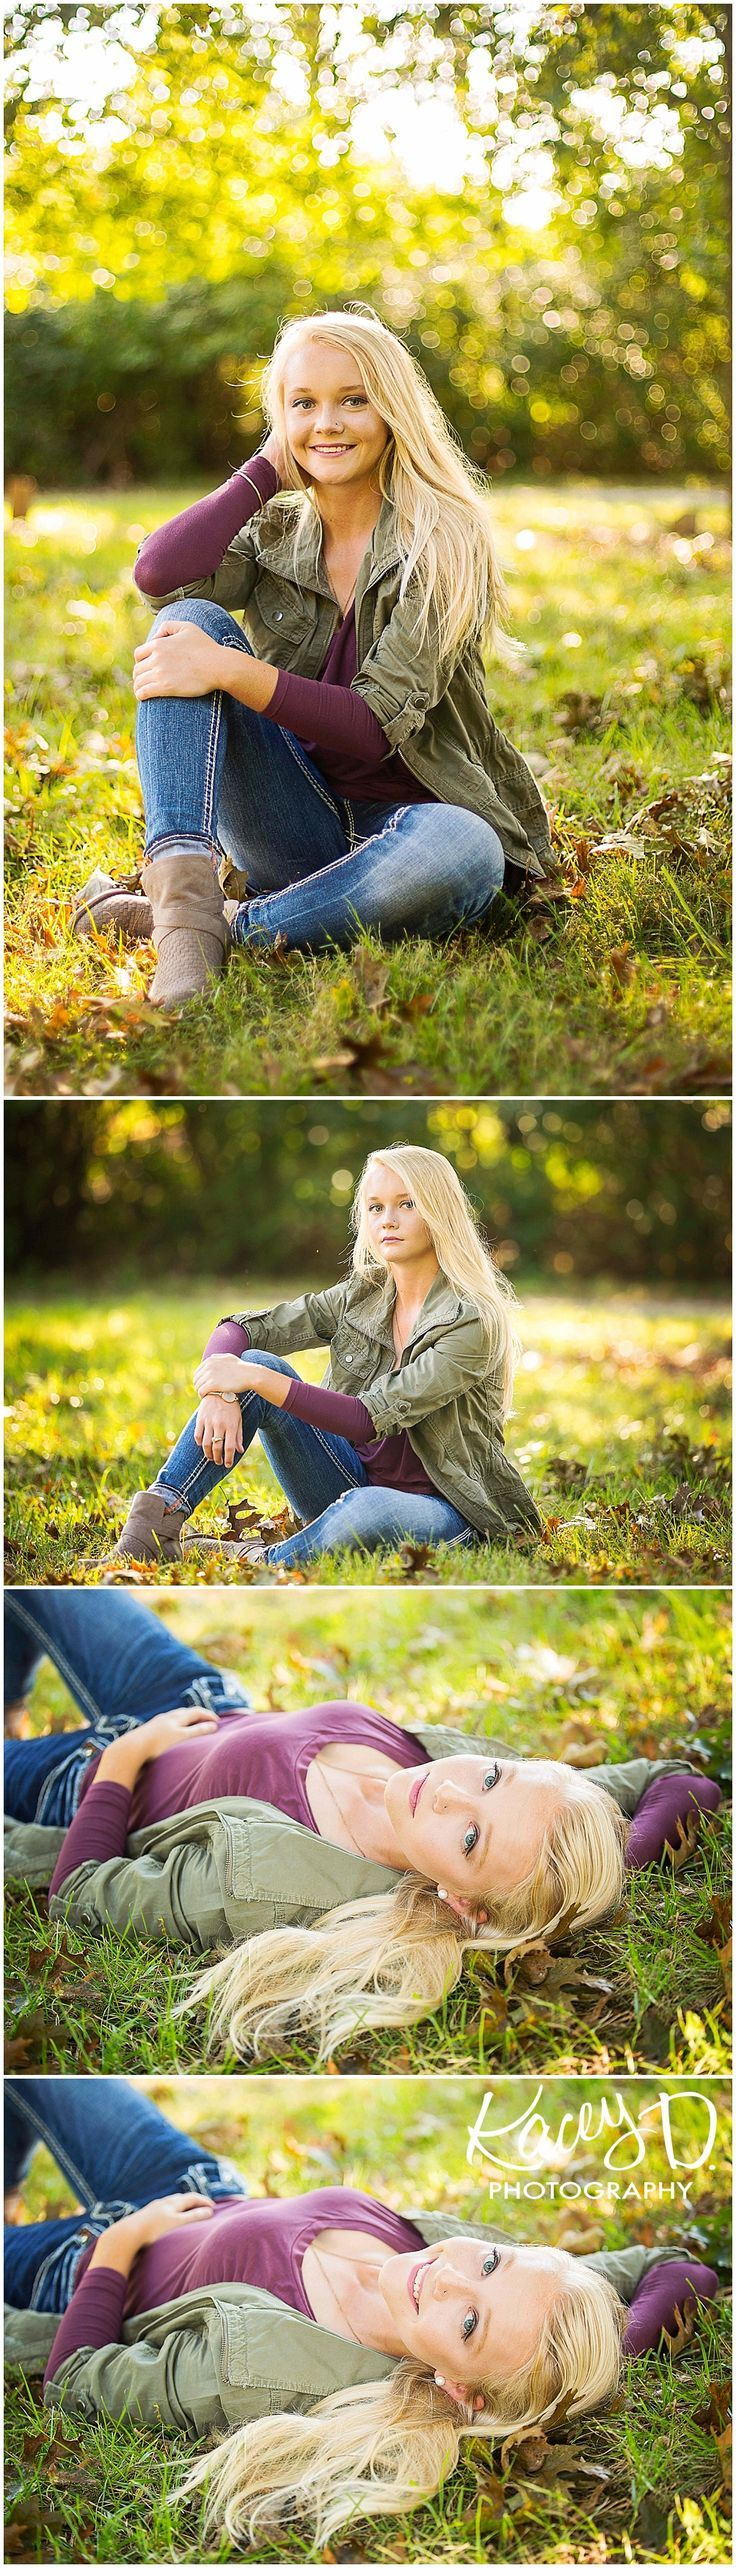 Kacey D Photography - Senior Photographer Columbia, MO - Fall Senior Pictures - Lovely Girl - Denim and Olive with Purple Outfit